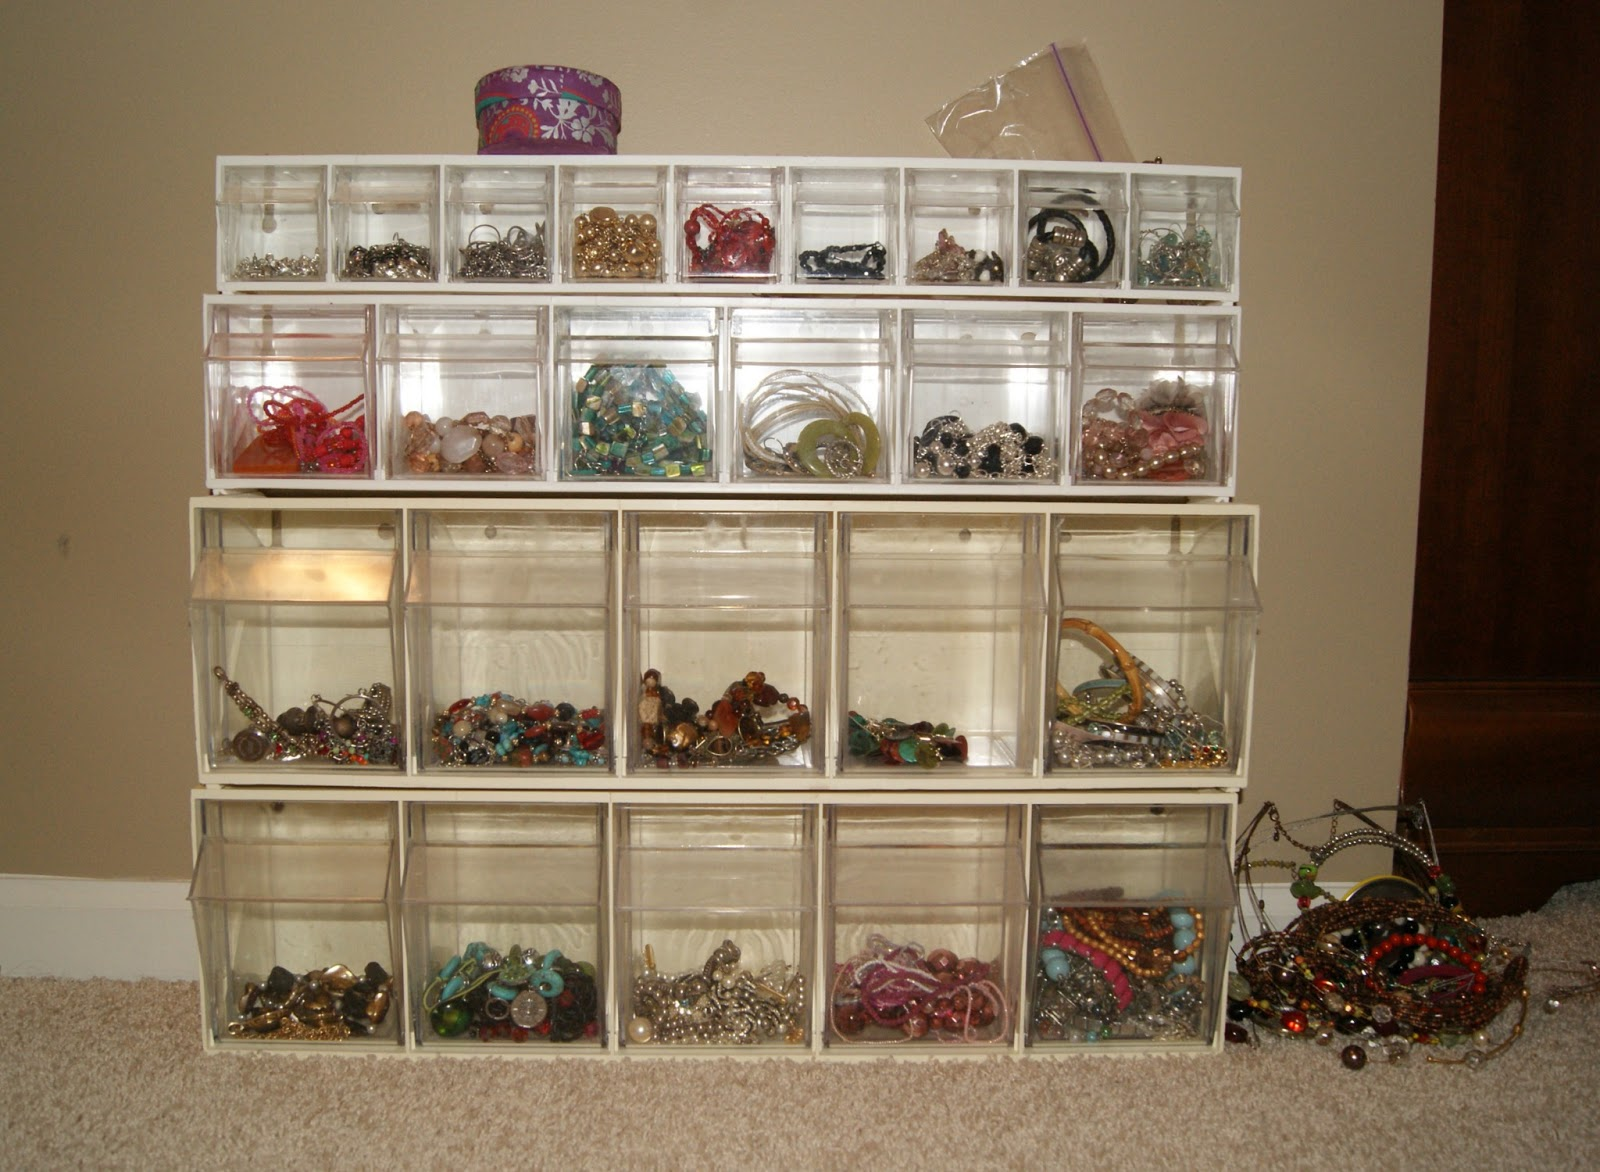 Posh pink giraffe how i organize my jewelry - Organizing nuts and bolts ...